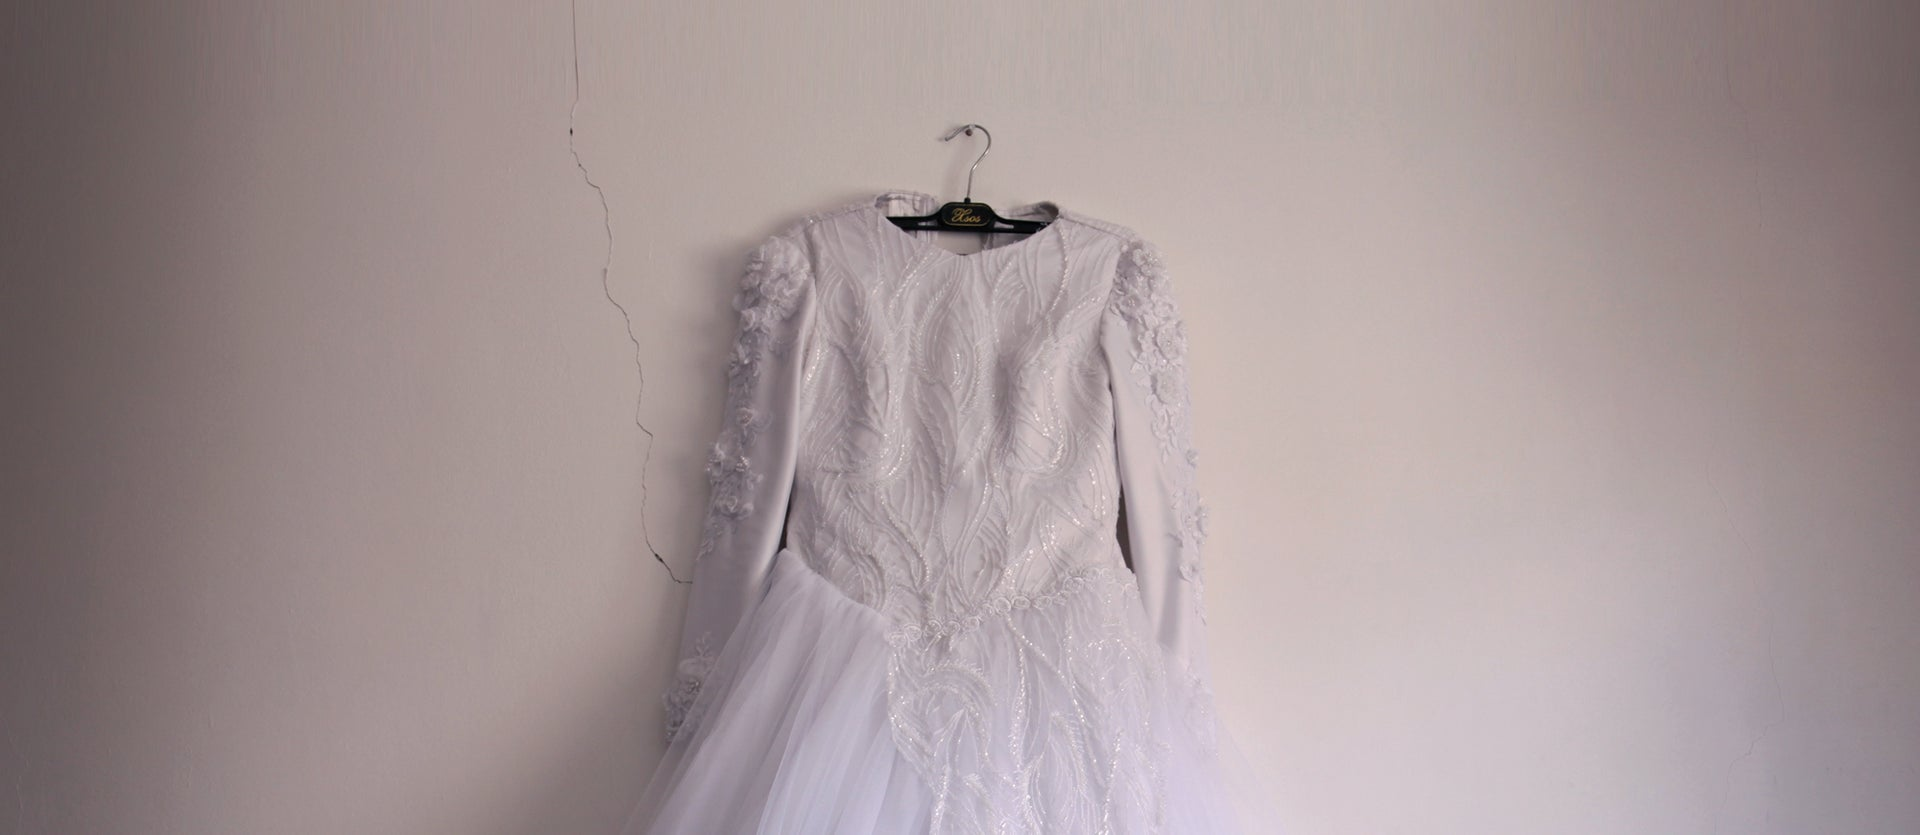 The top part of a wedding dress